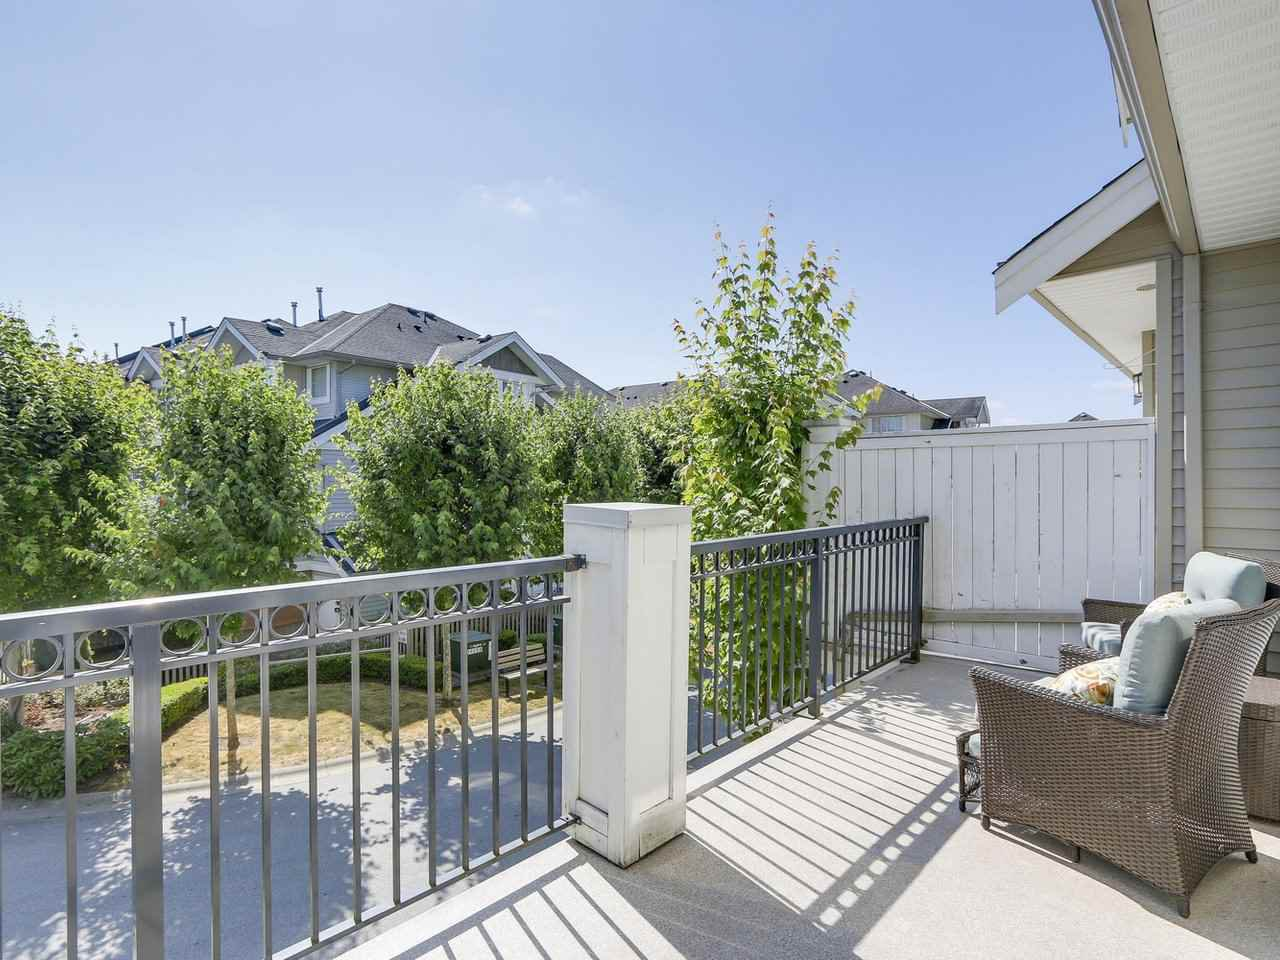 Photo 12: Photos: 43 19330 69 AVENUE in Surrey: Clayton Townhouse for sale (Cloverdale)  : MLS®# R2185704